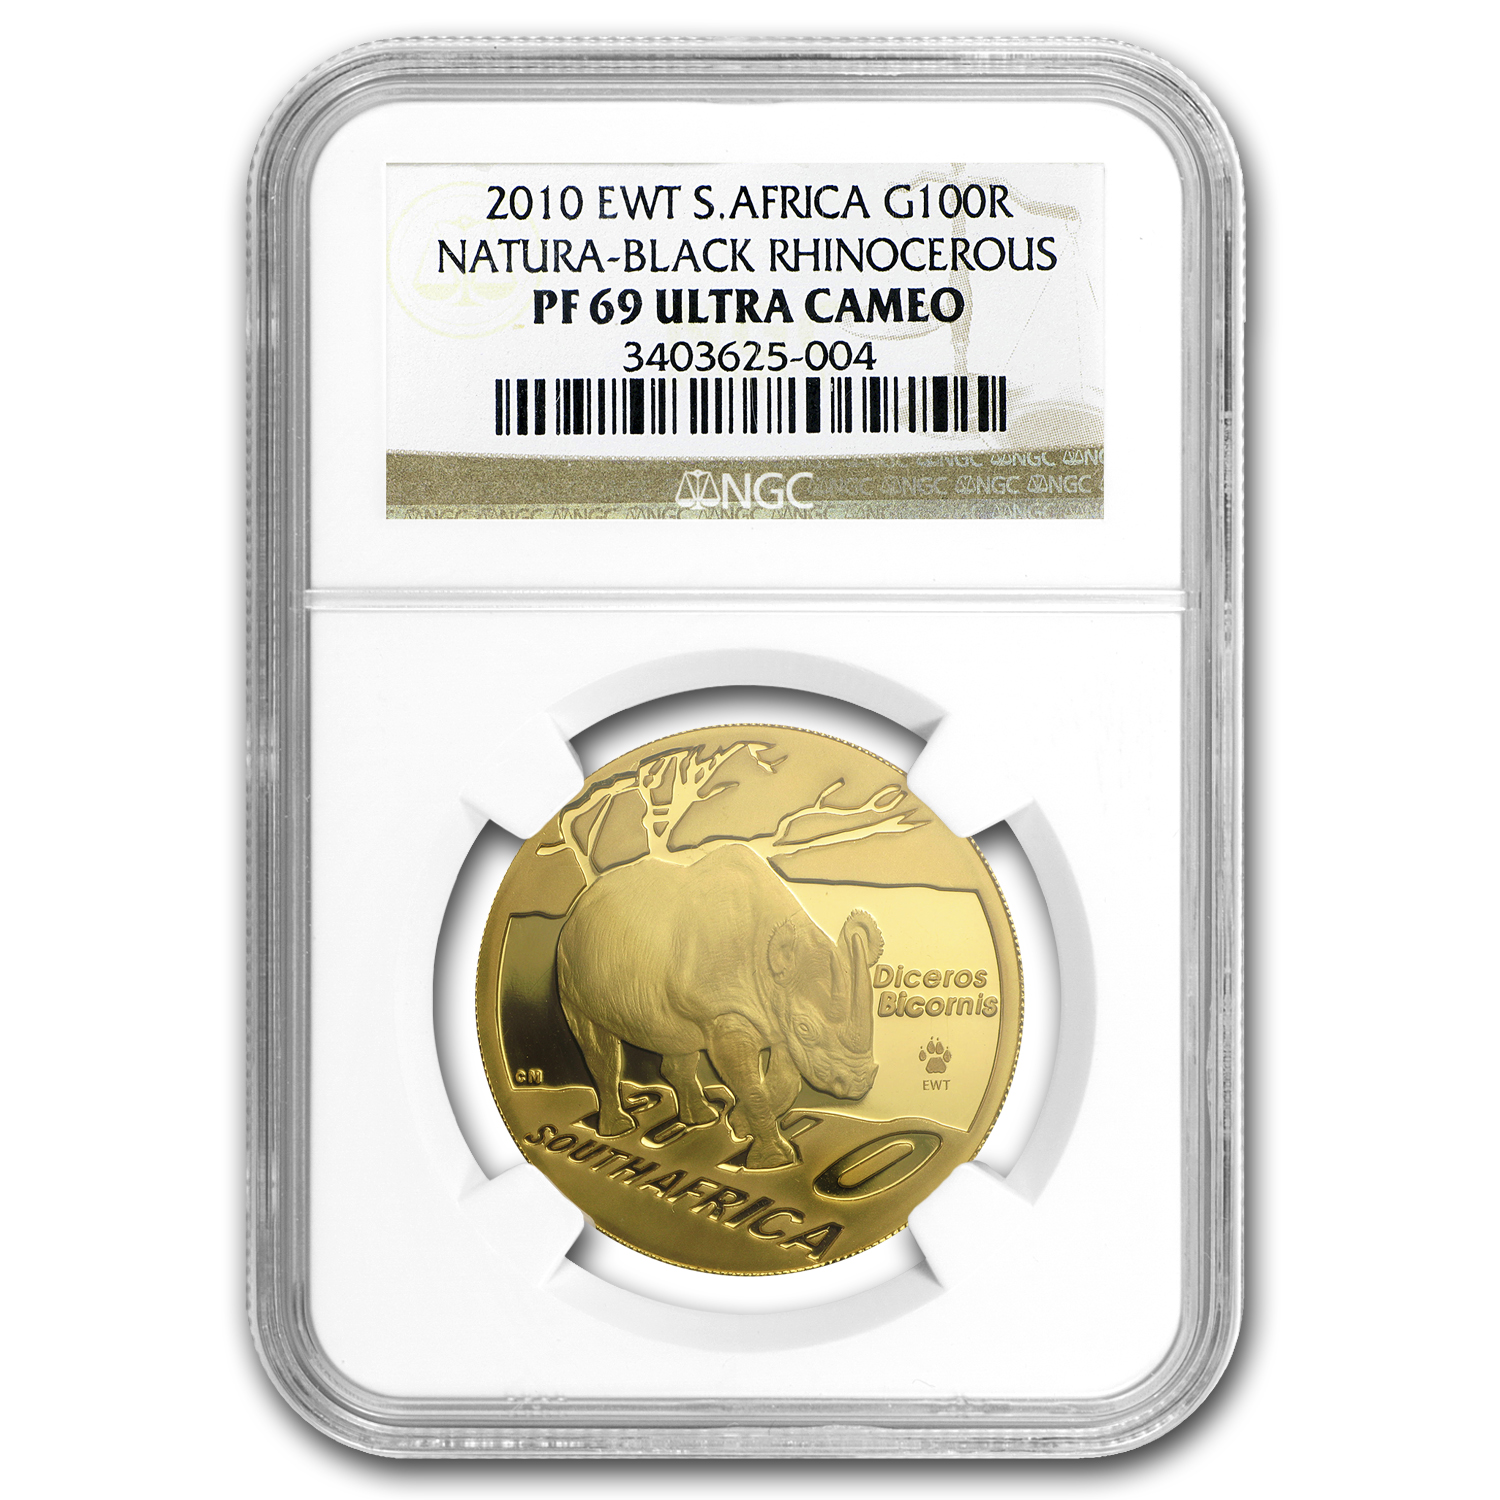 2010 So.Africa 1 oz Gold Natura Black Rhino EWT PF-69 NGC